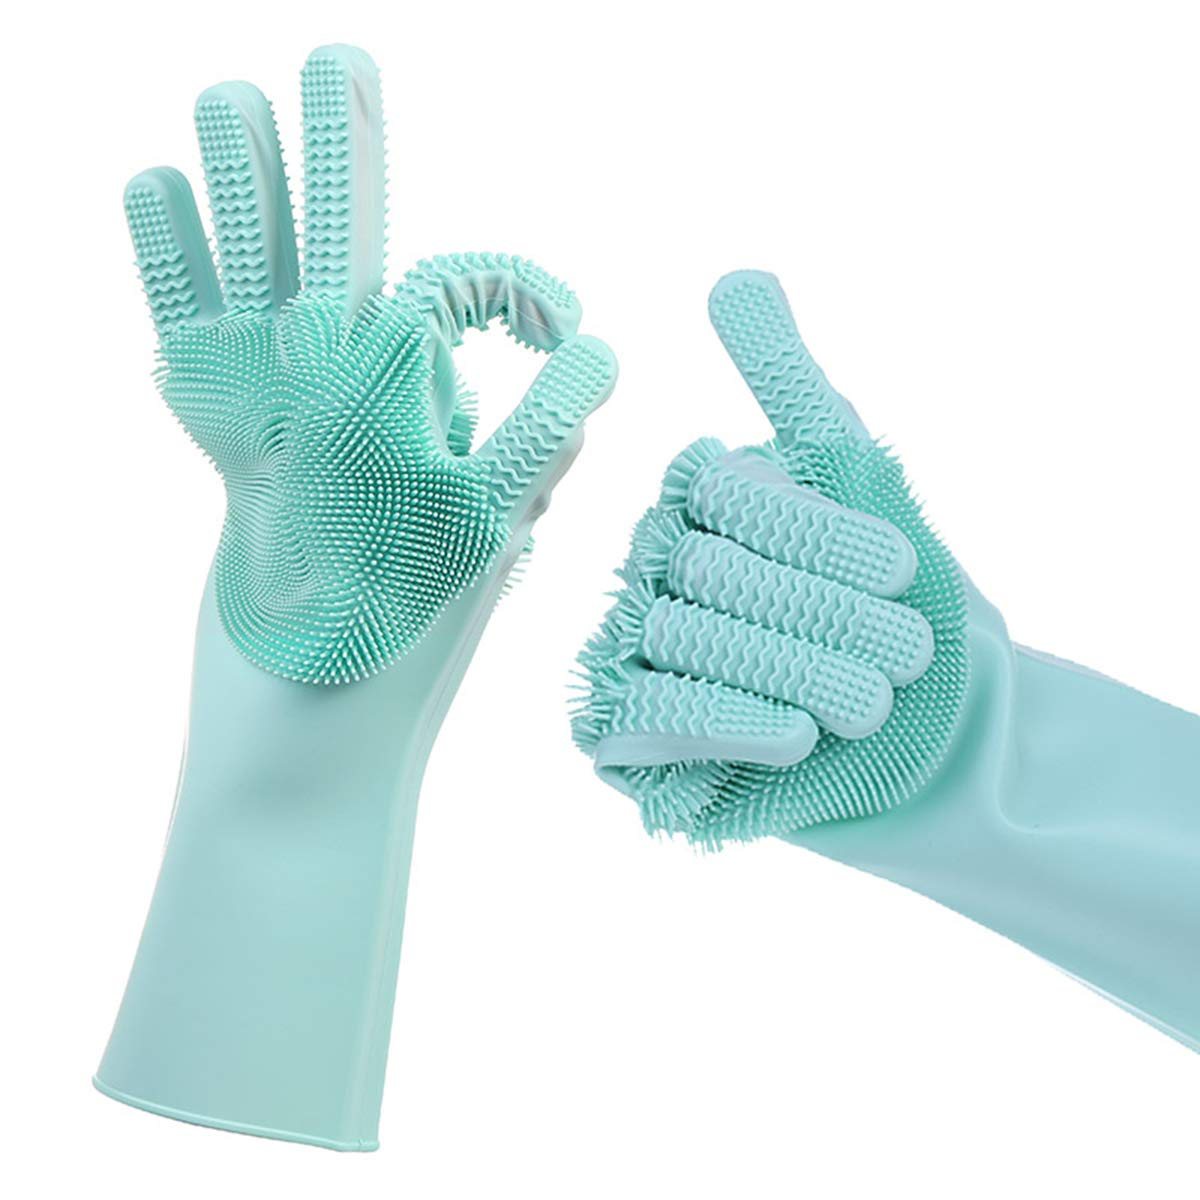 Superiorbuy 1 Pair Silicone Dishwashing Gloves Anti-Slip Cleaning Gloves with Both Sides Scrubber Oven Safe Kitchen Gloves for Protecting Your Hands (Teal Green)